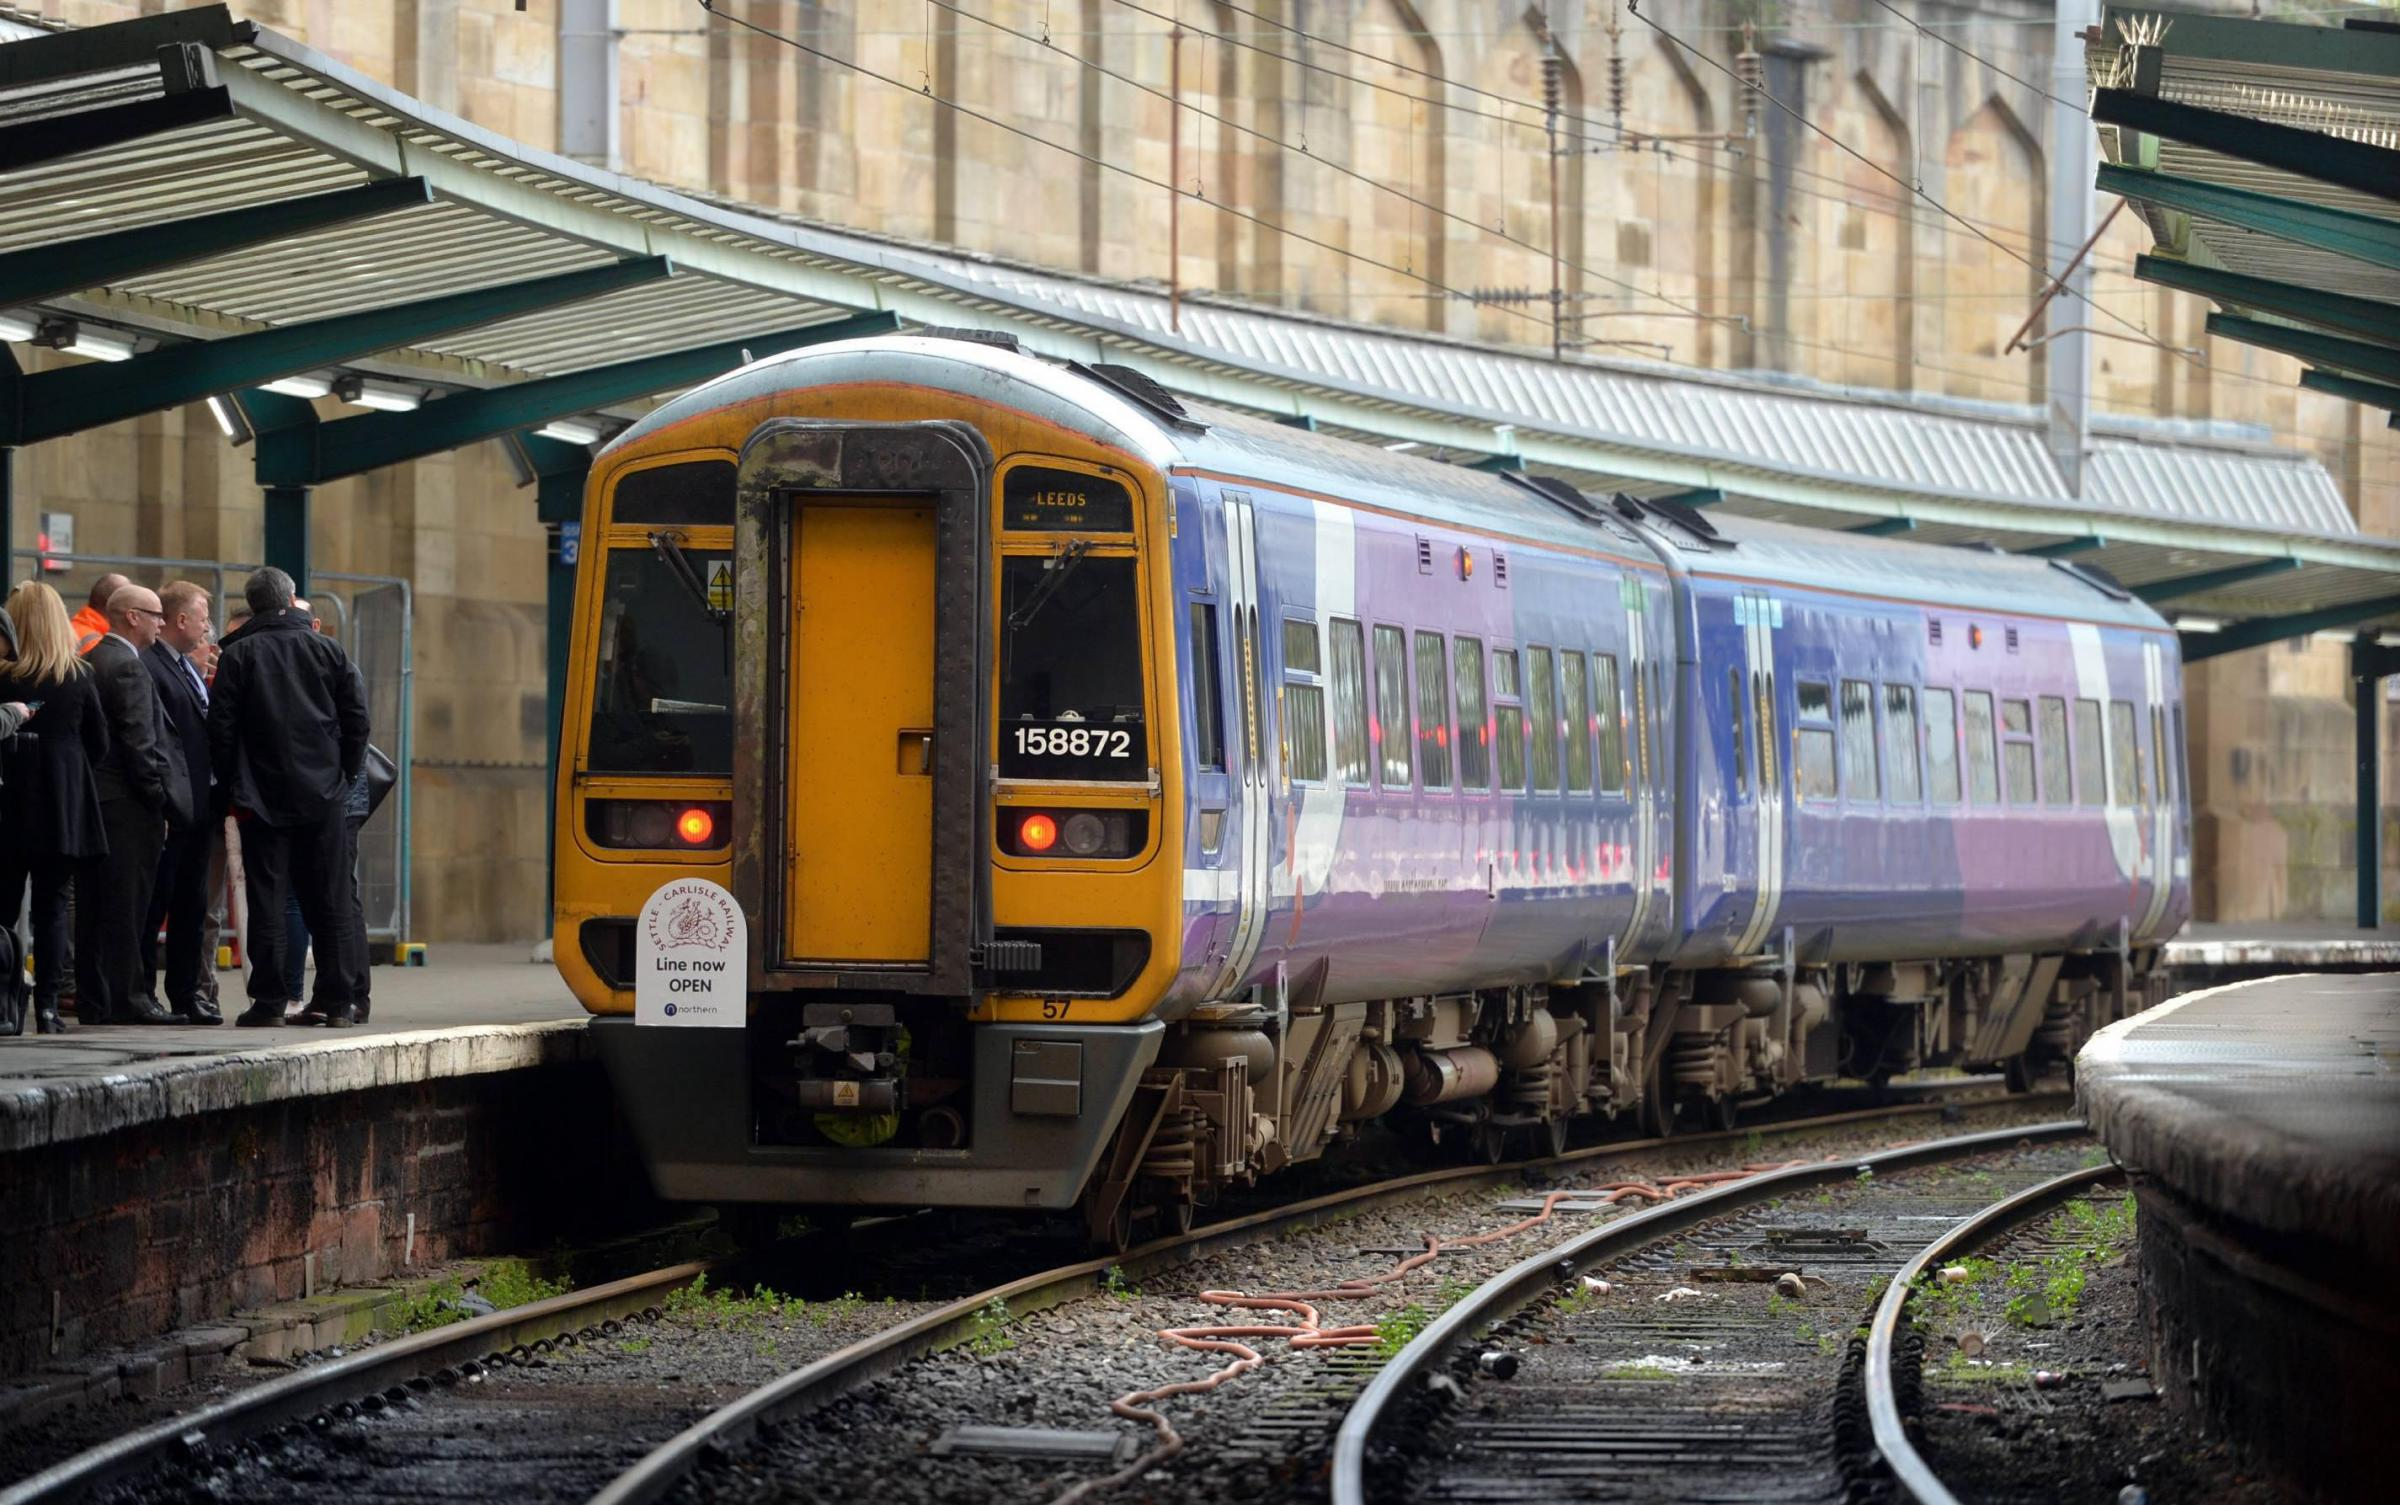 The Settle Carlisle railway line is now fully open after a major engineering project by Network Rail and Story to repair a landslip at Eden Brows near Armathwaite. The first Northern Rail train to arrive in Carlisle at 8:17 after travelling over the newly